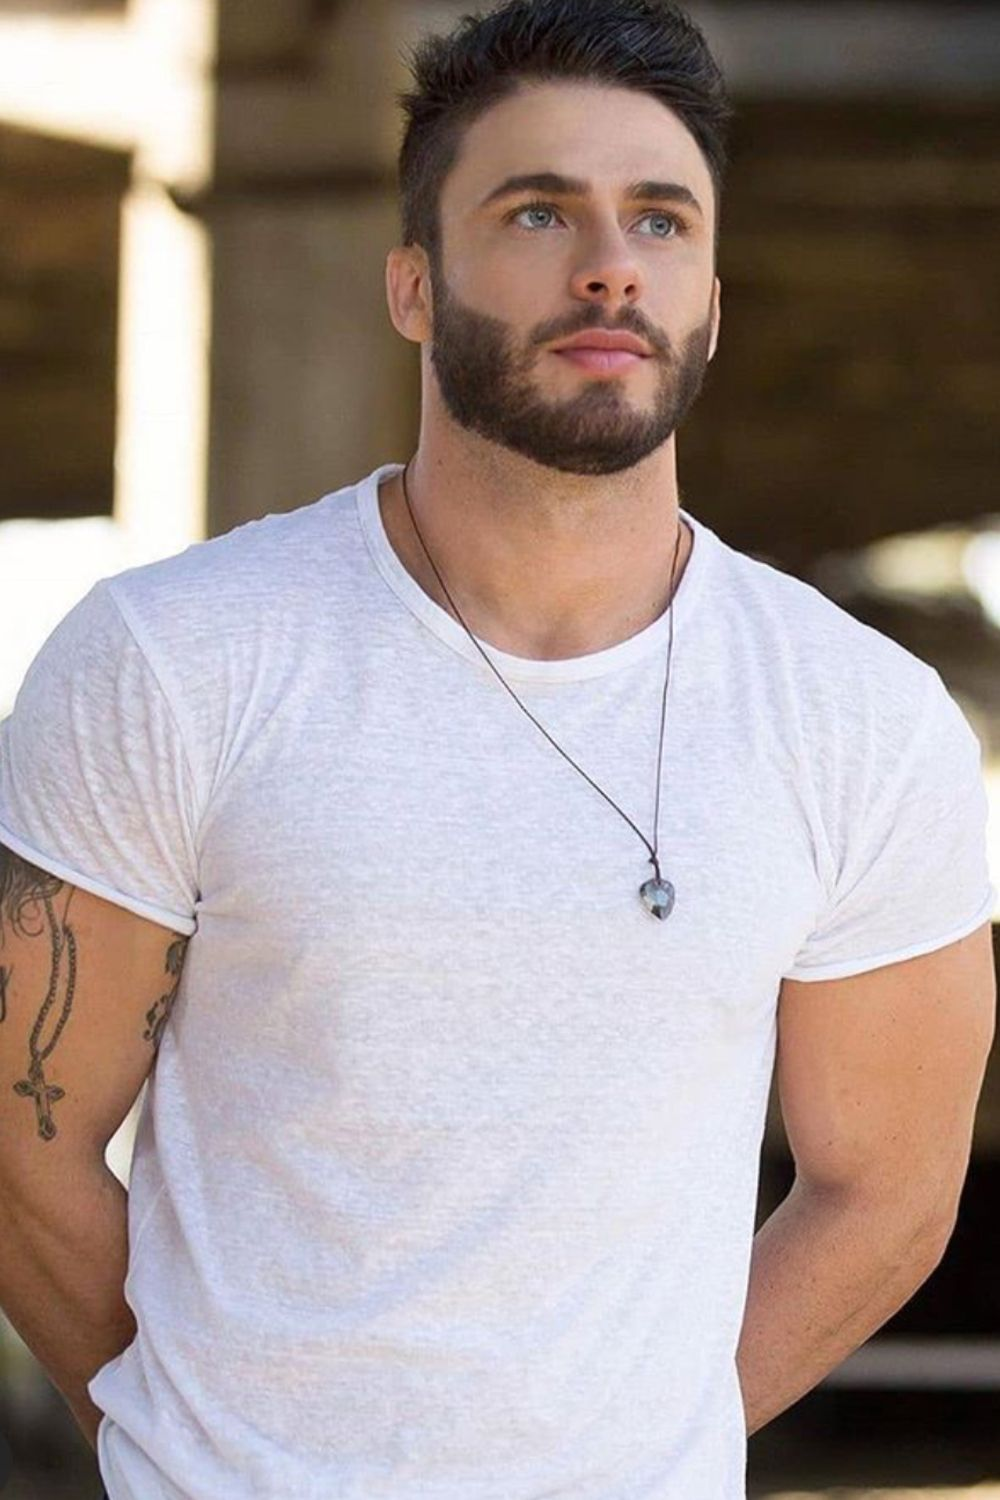 Short Full Beard Style For Men With Short Hair